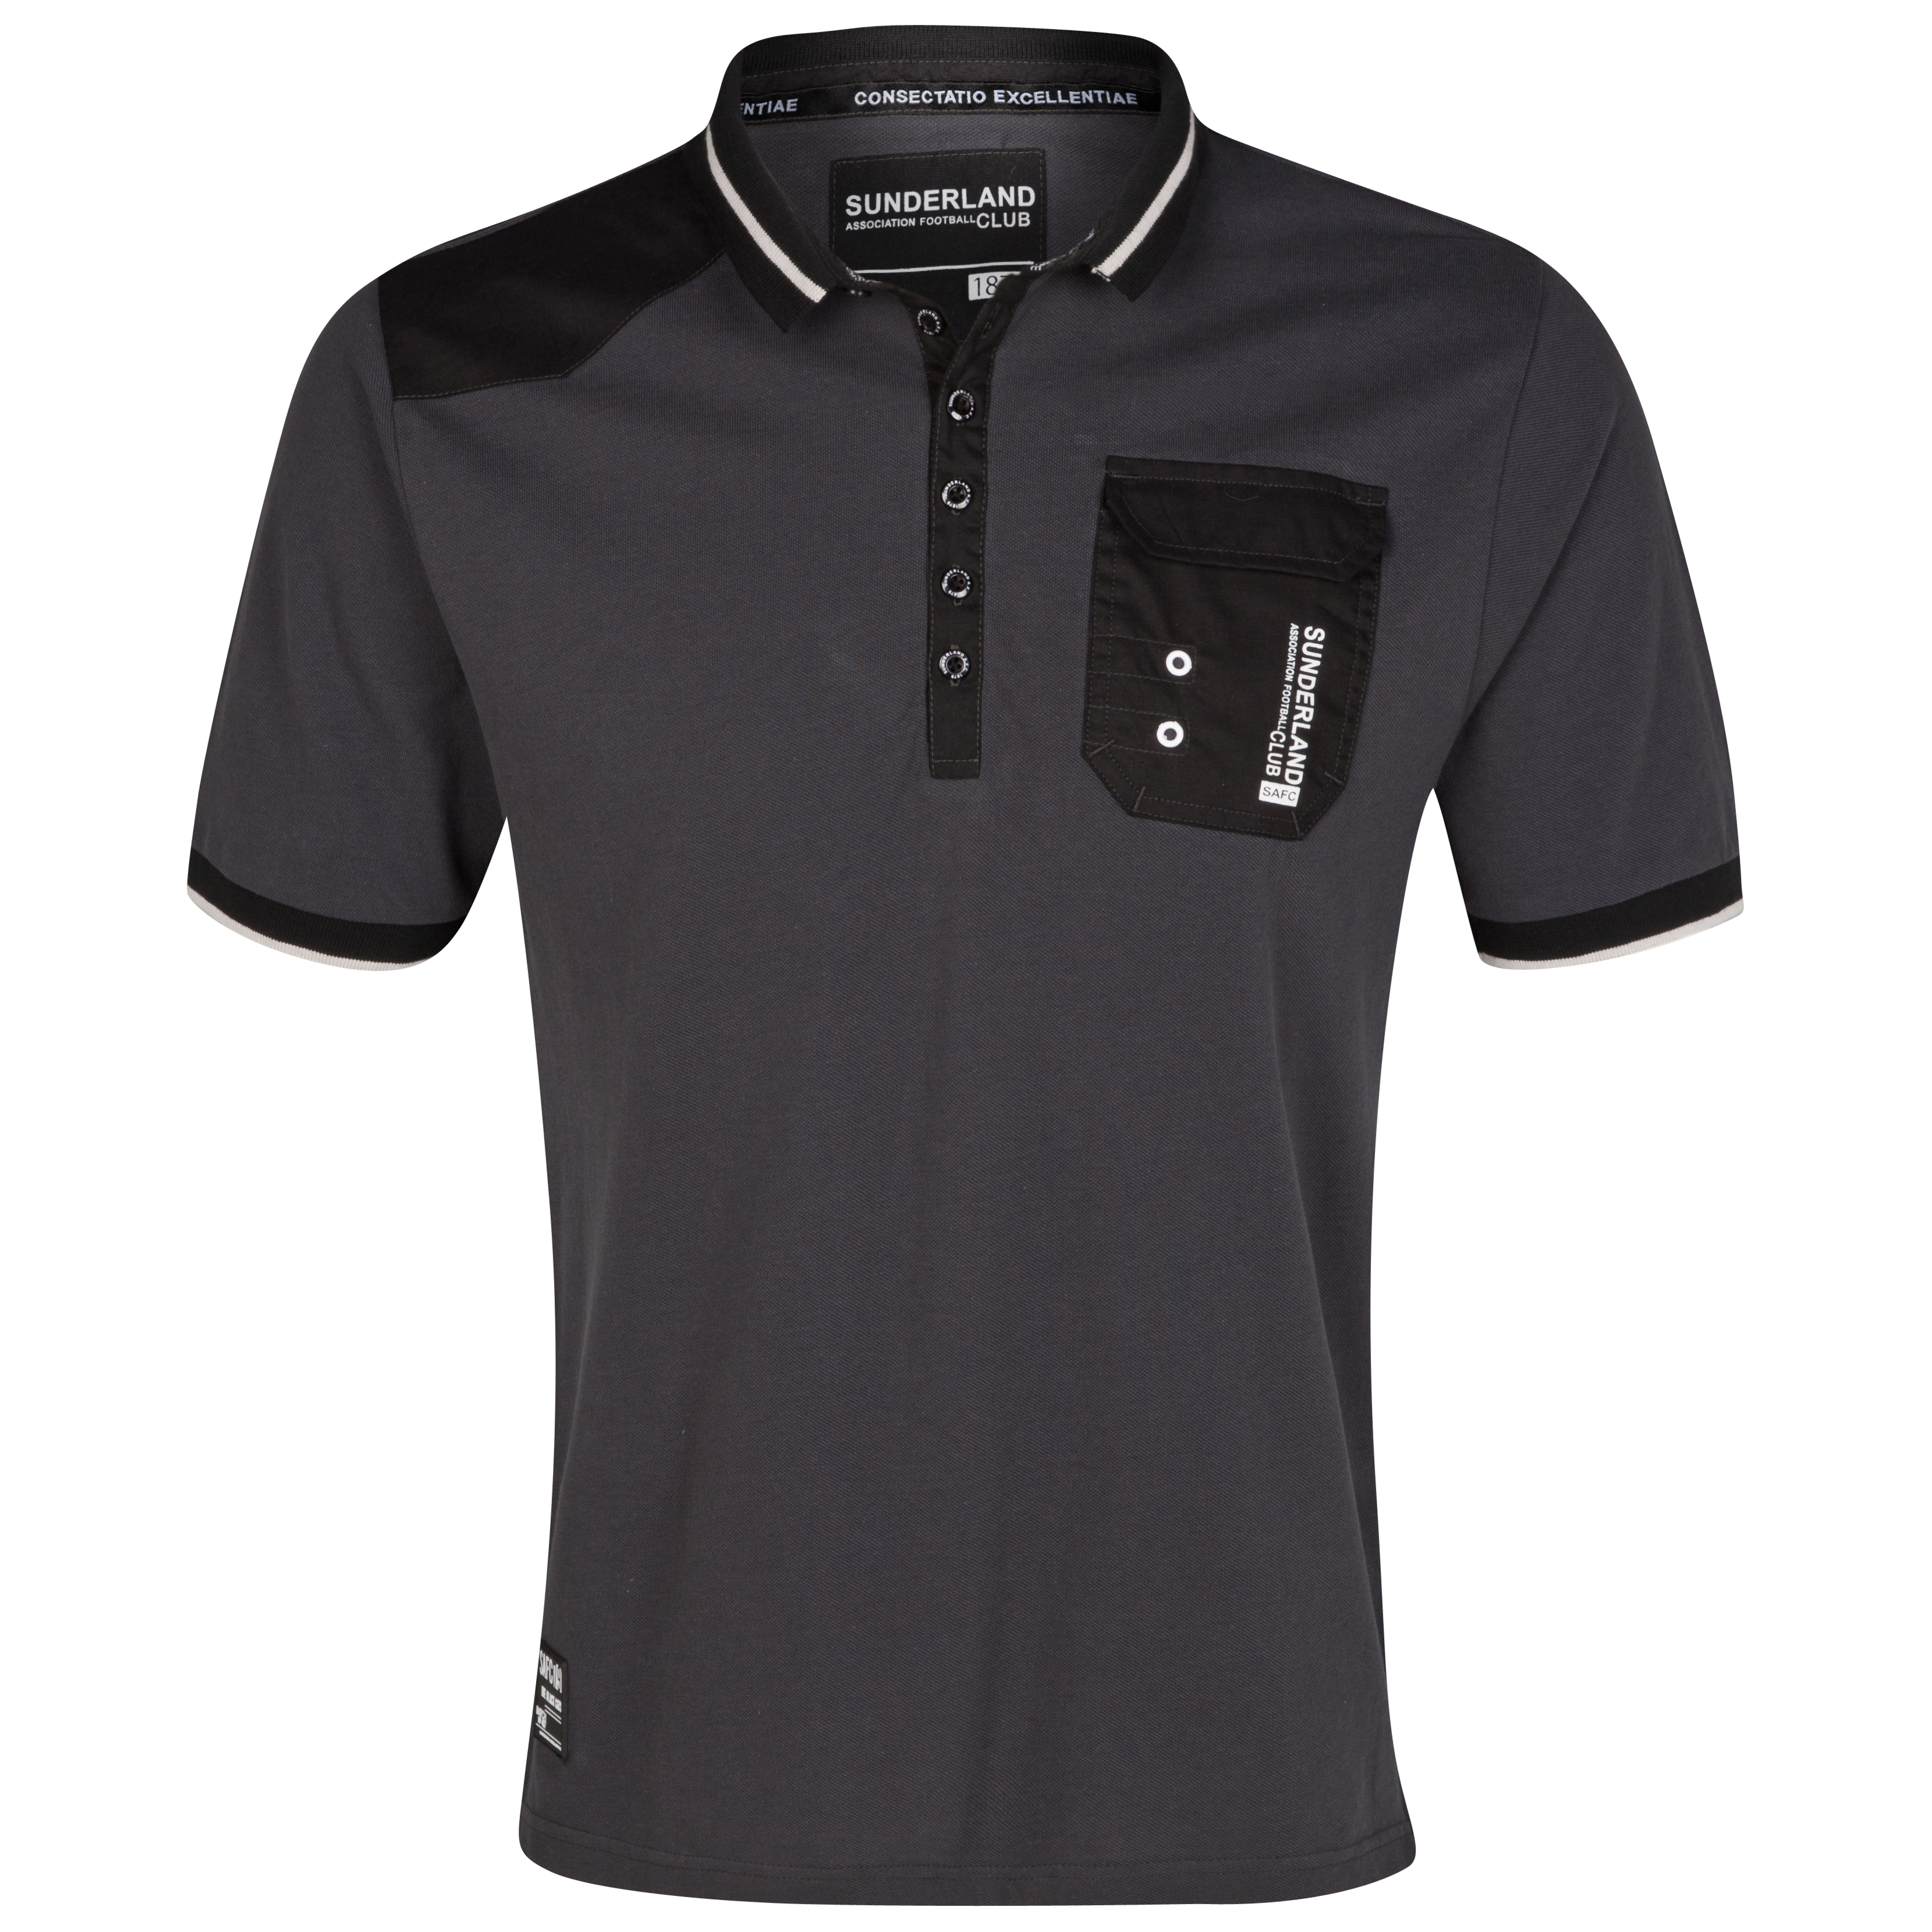 Sunderland Patched Polo Top - Charcoal